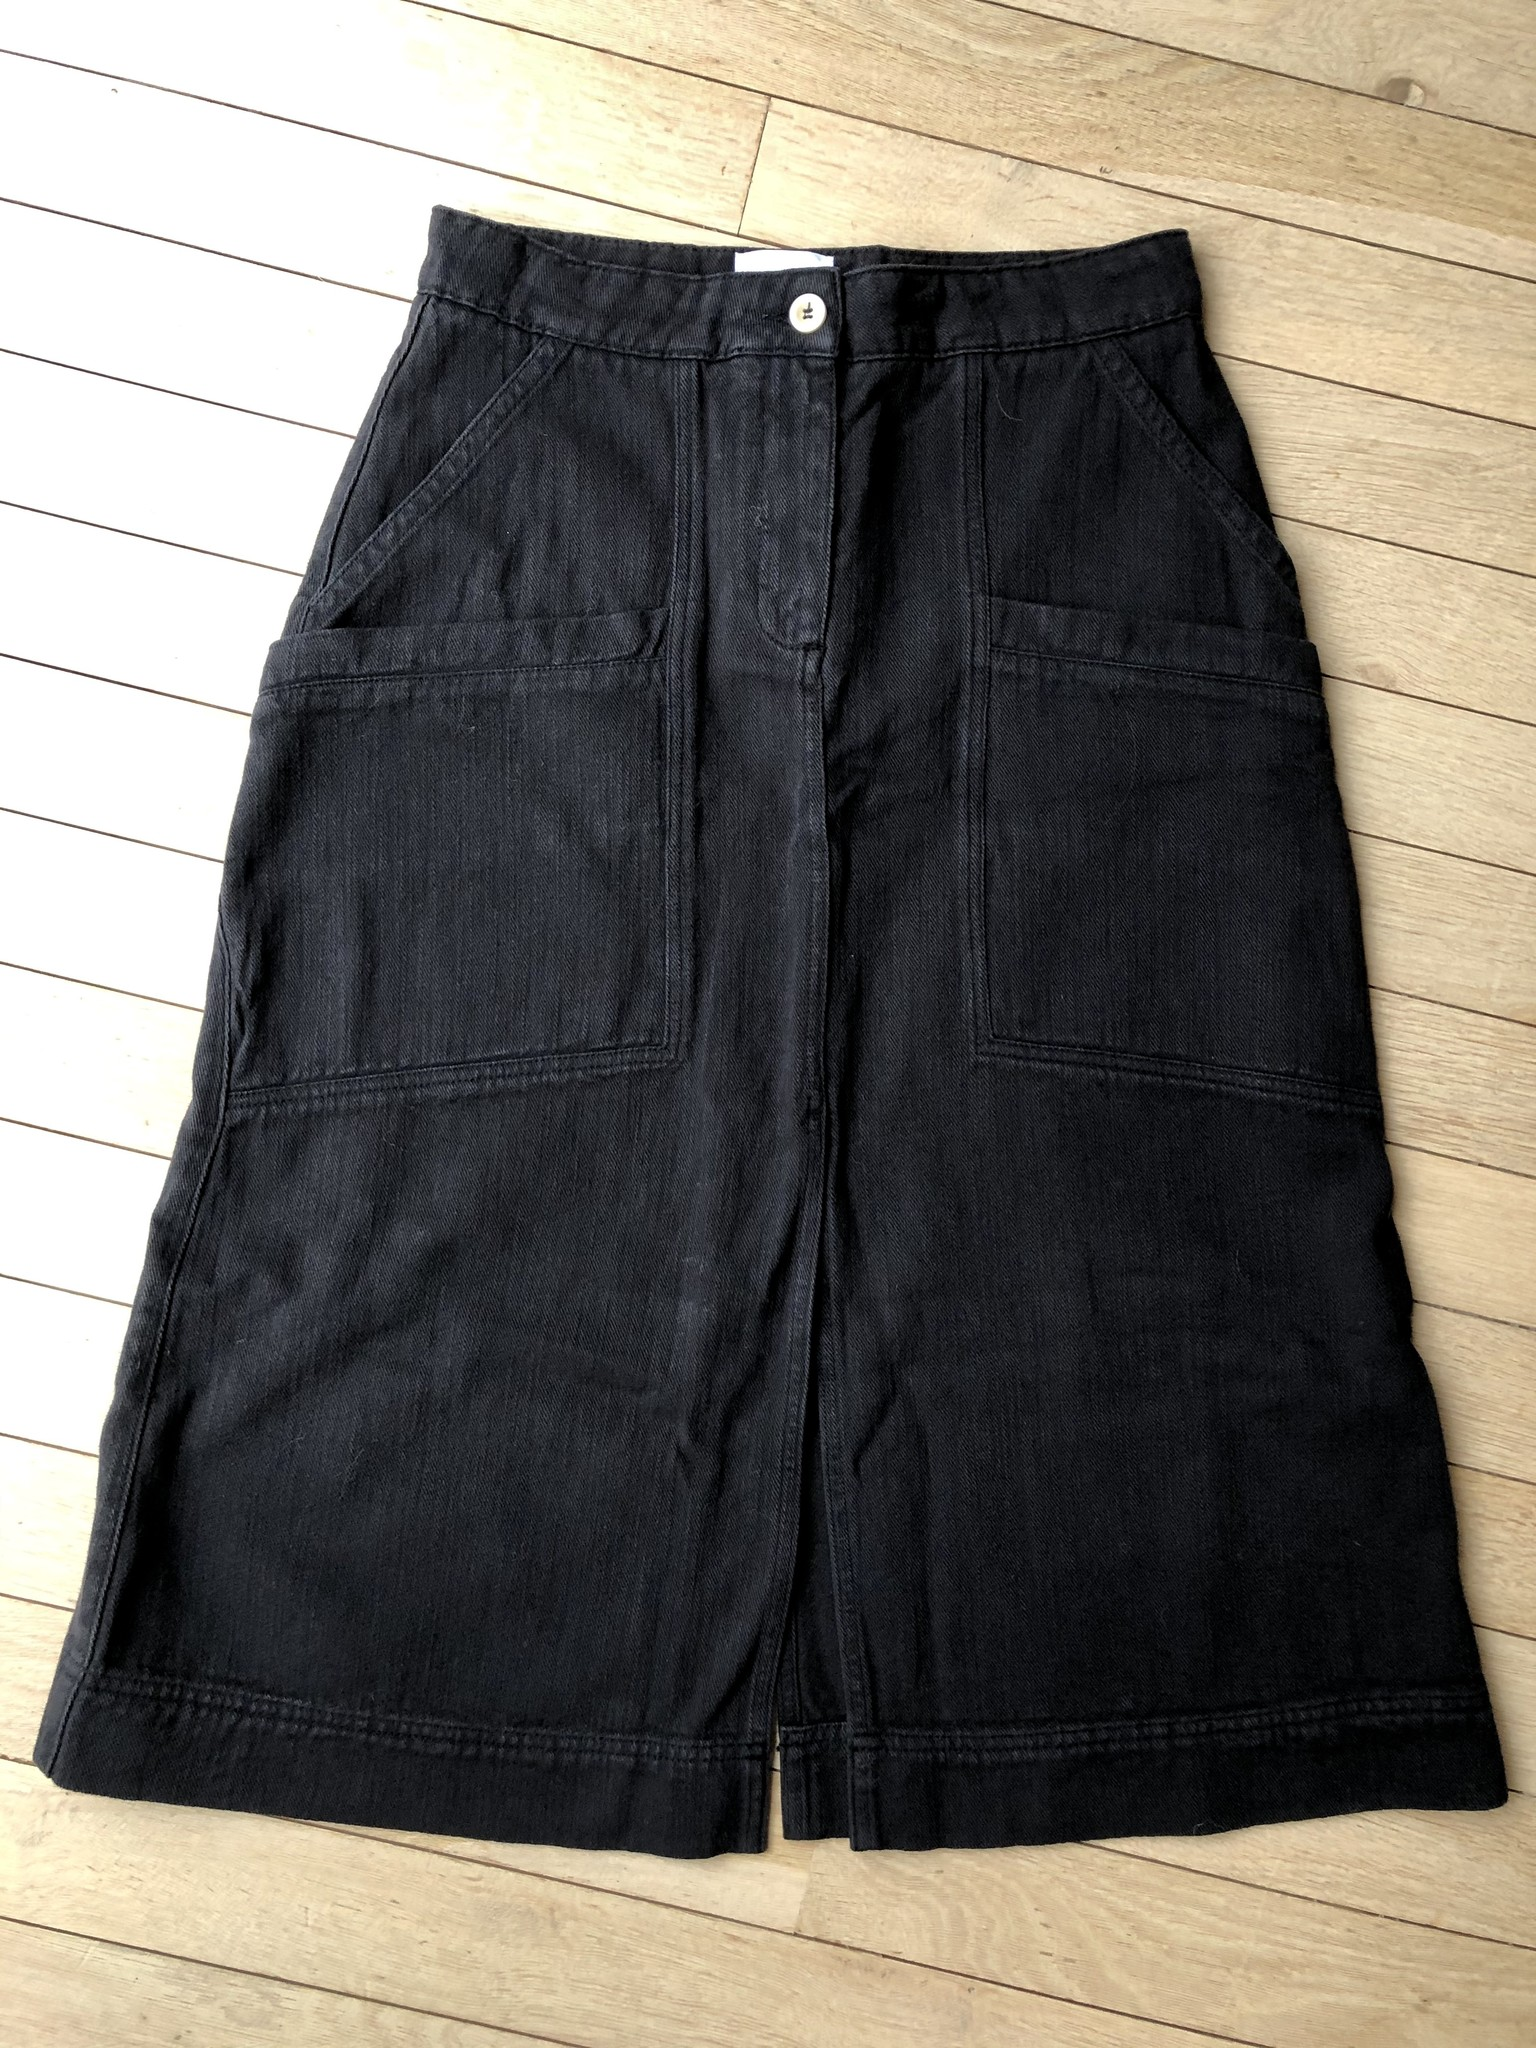 N°405 washed-3